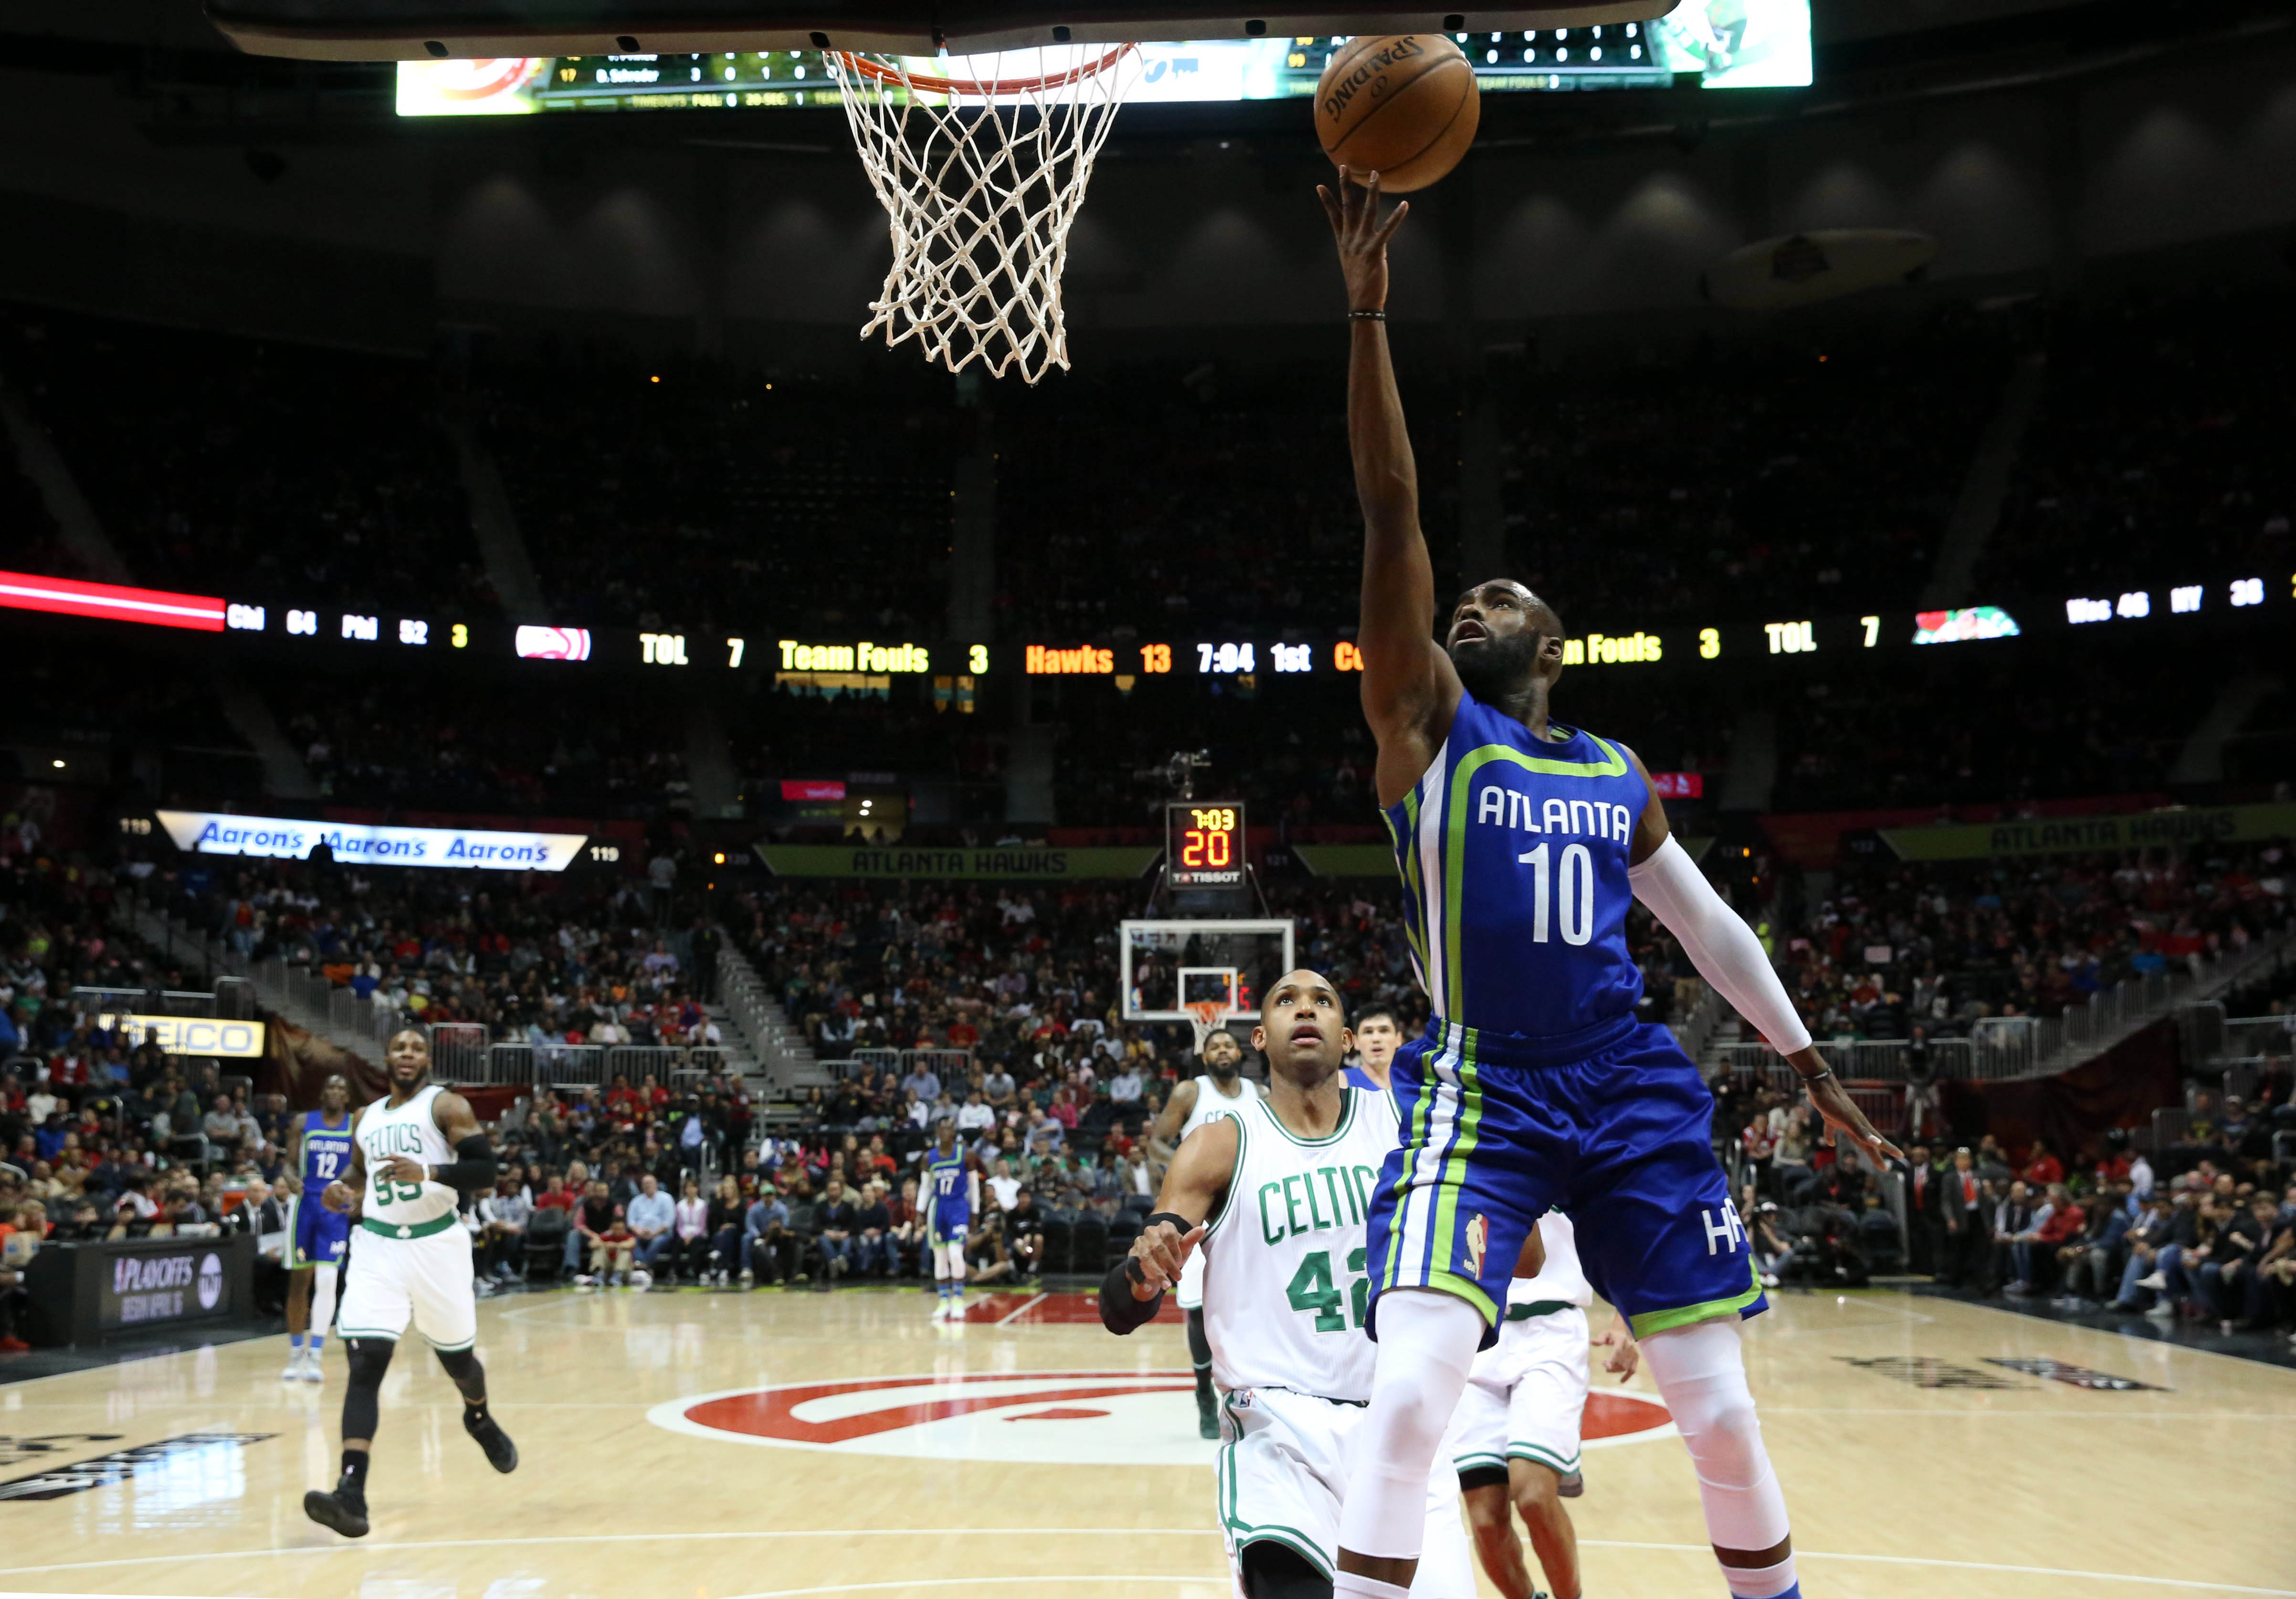 Hibbert and no 6 seed hawks al horford are two of the best centers - Apr 6 2017 Atlanta Ga Usa Atlanta Hawks Guard Tim Hardaway Jr 10 Attempts A Shot Against Boston Celtics Center Al Horford 42 In The First Quarter